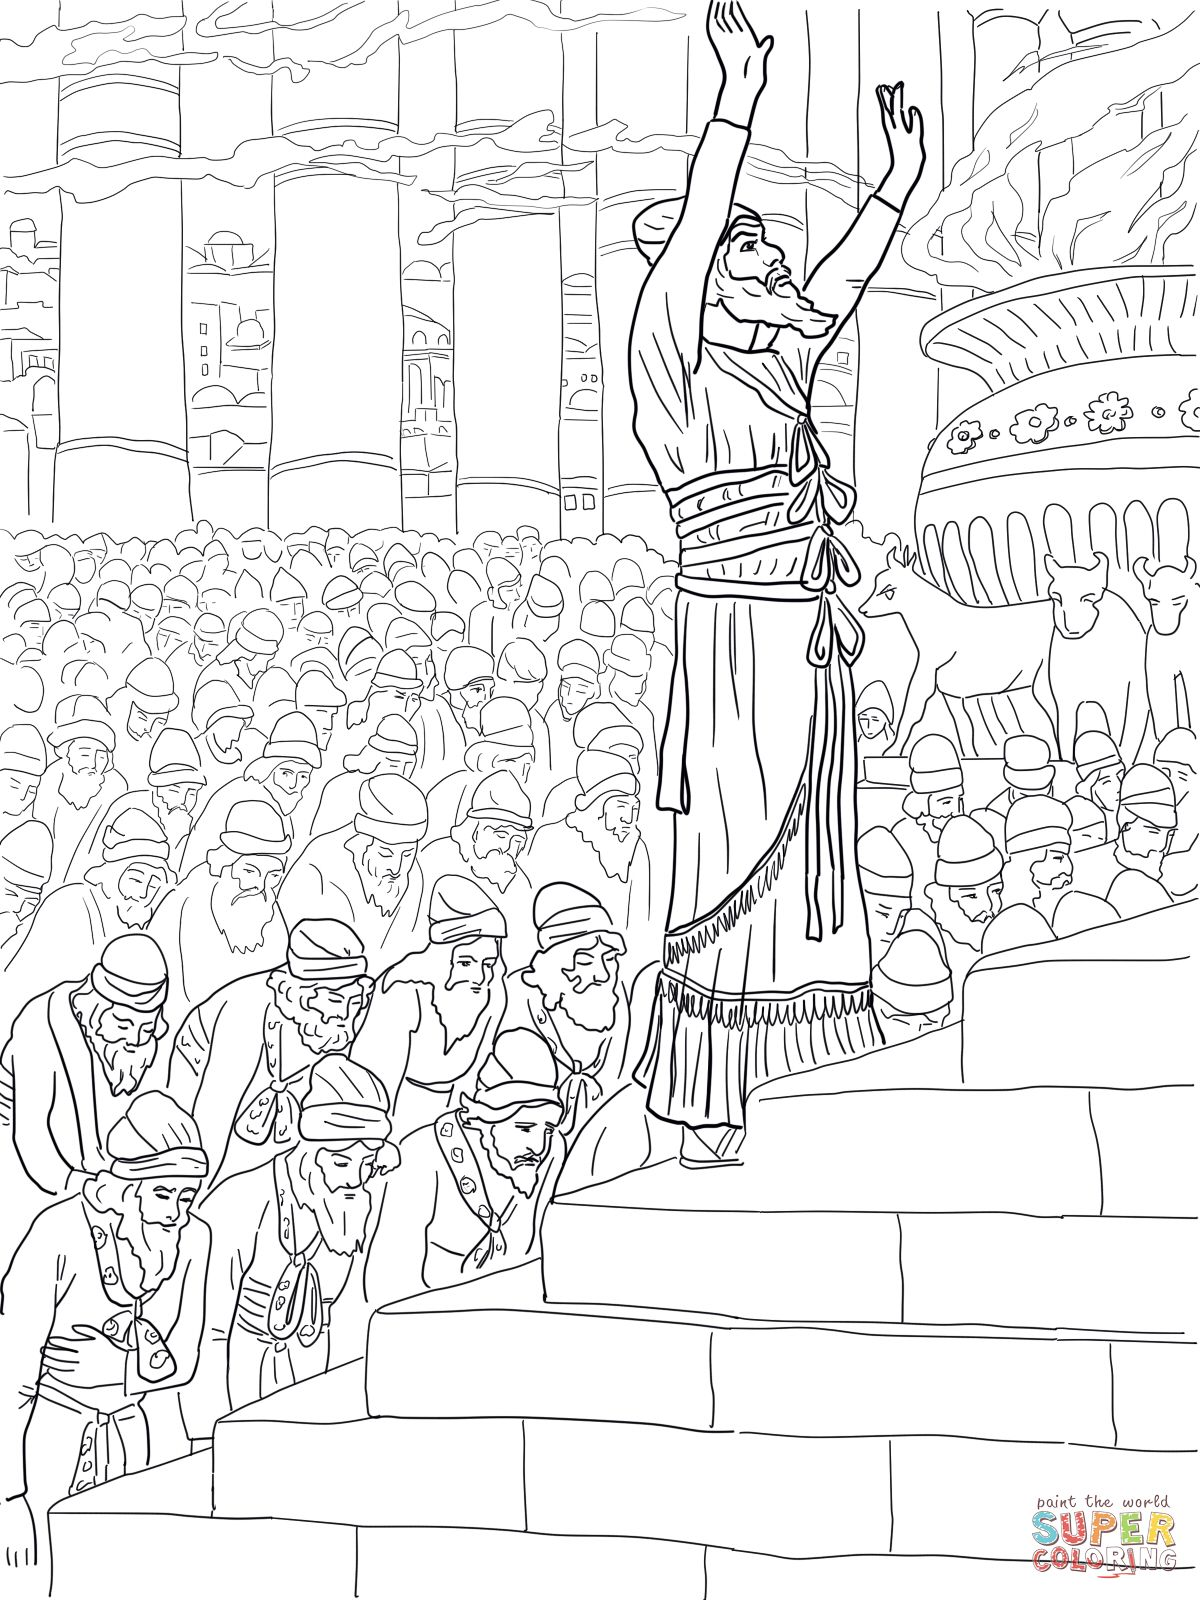 Solomon prayer in the temple coloring page supercoloring for Building the temple coloring pages